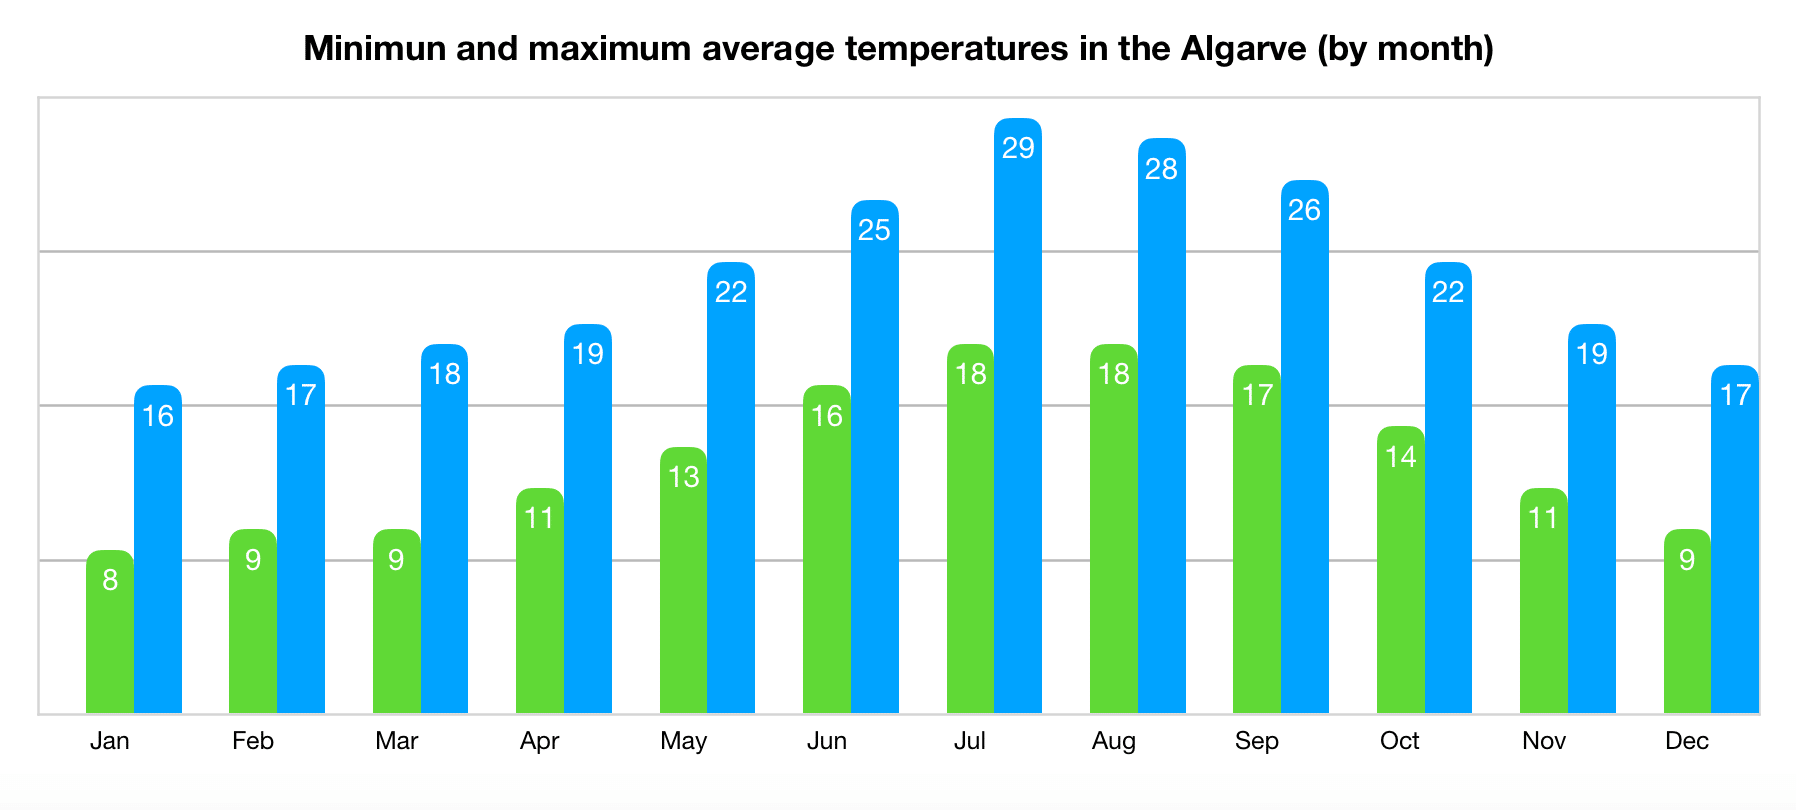 Average temperature in the Algarve by month